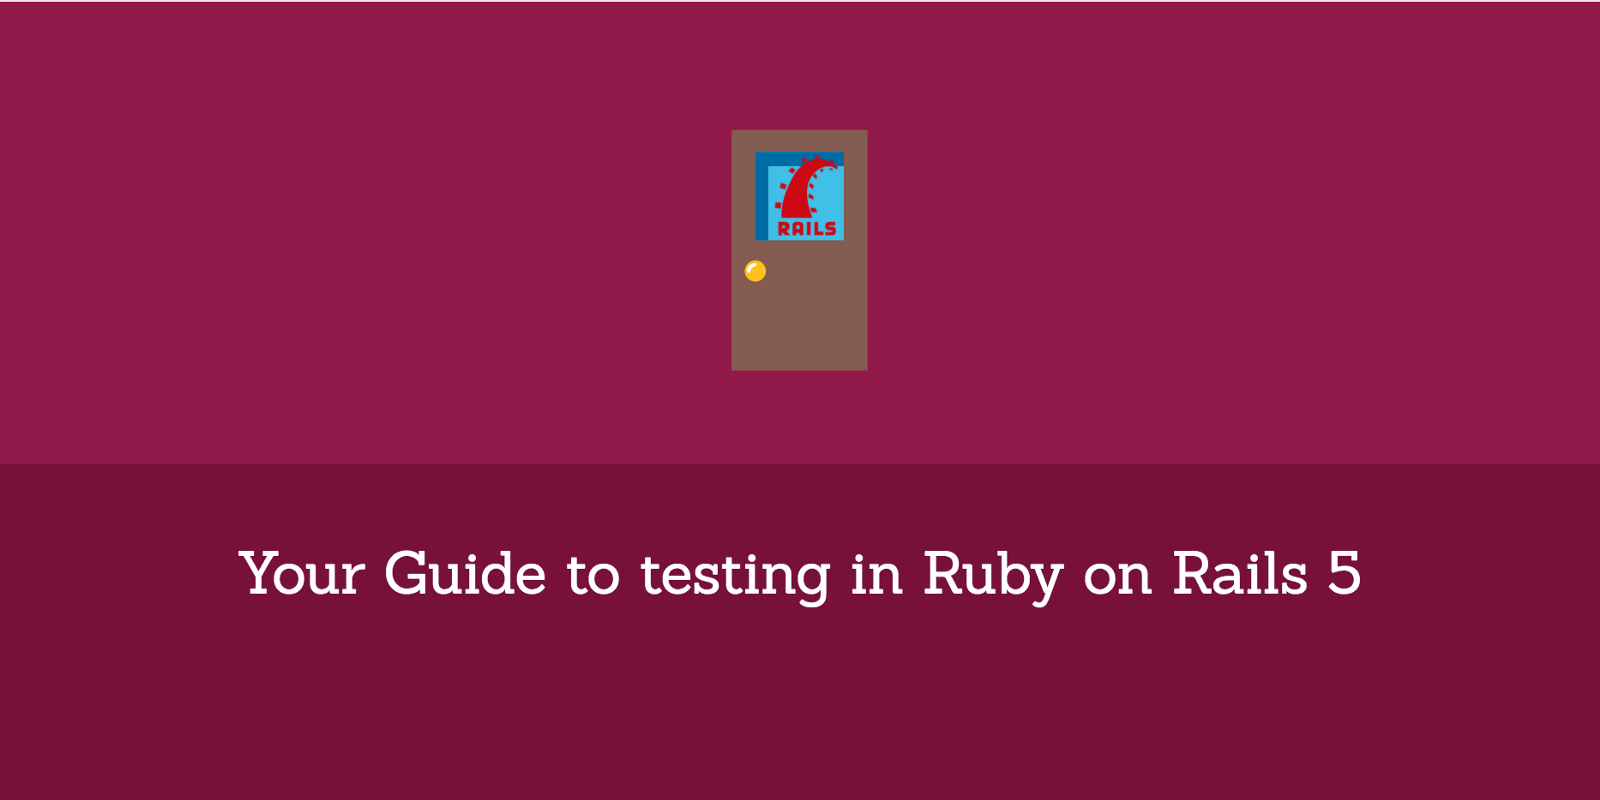 Your Guide to testing in Ruby on Rails 5